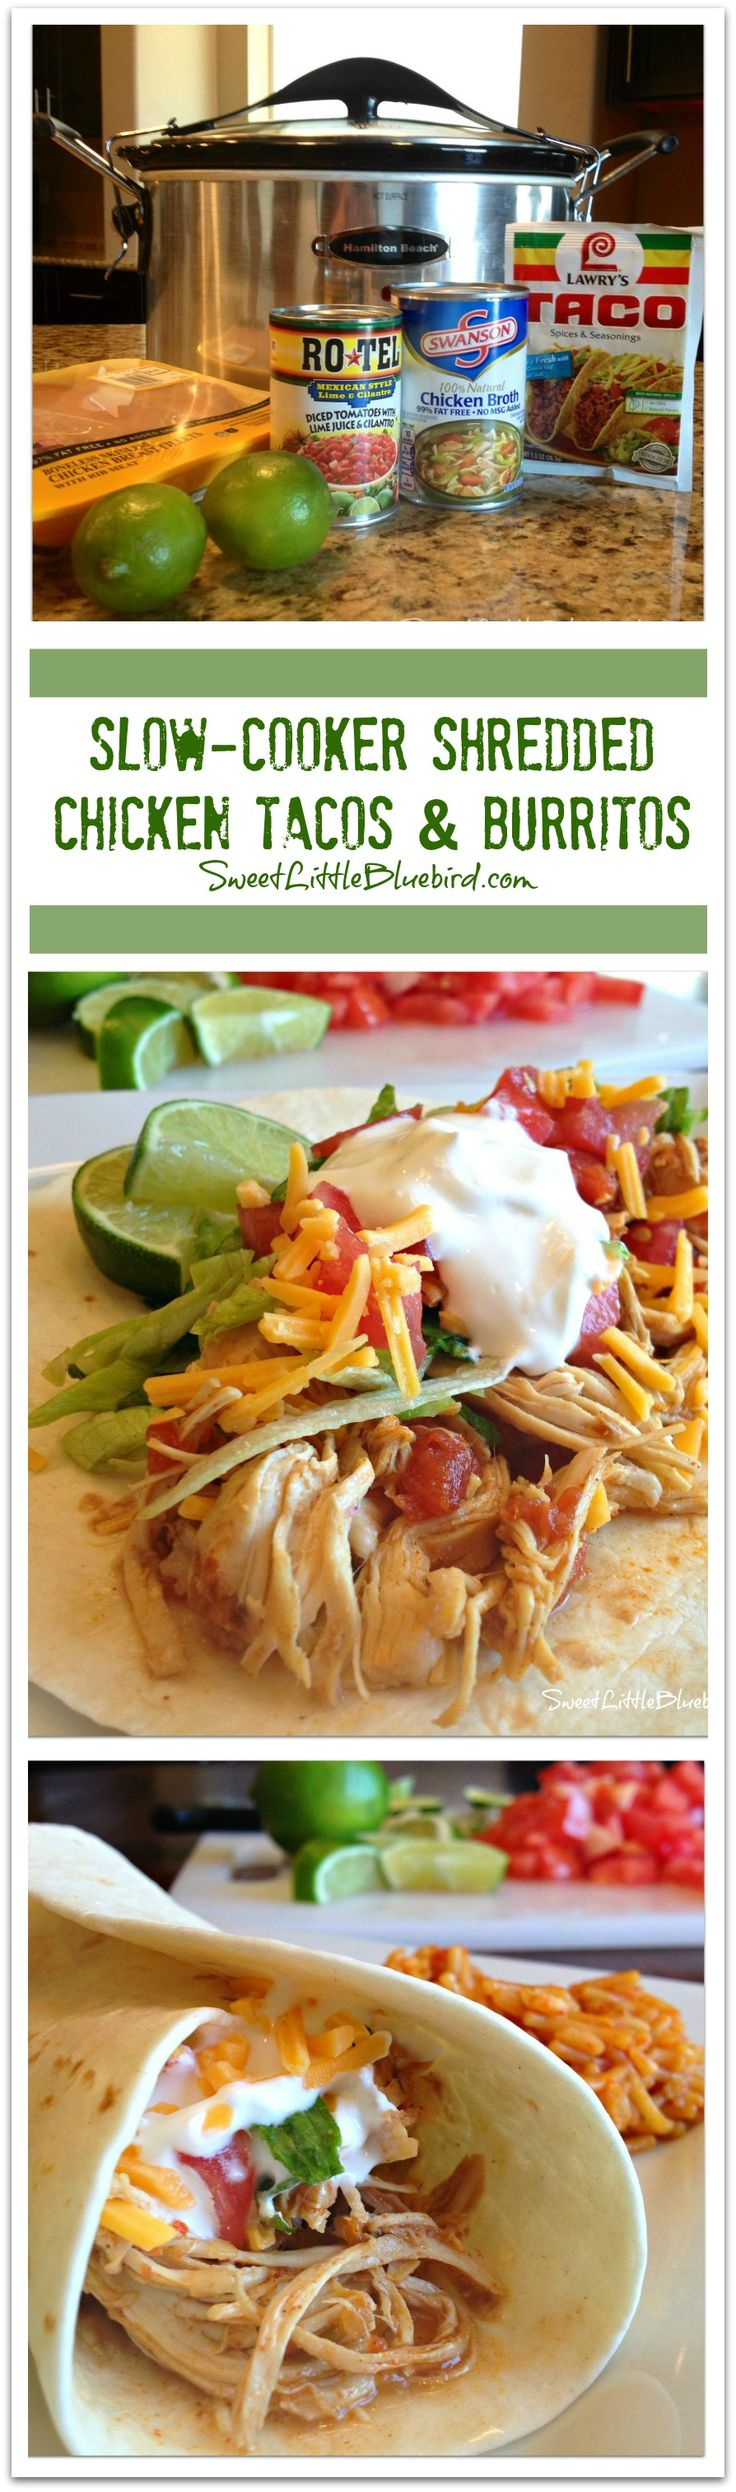 SLOW-COOKER SHREDDED CHICKEN TACOS AND BURRITOS - Just a few ingredients to make, so simple, so good. The only way I make chicken tacos and burritos!!  Tender, juicy, delicious!! |  SweetLittleBluebird.com